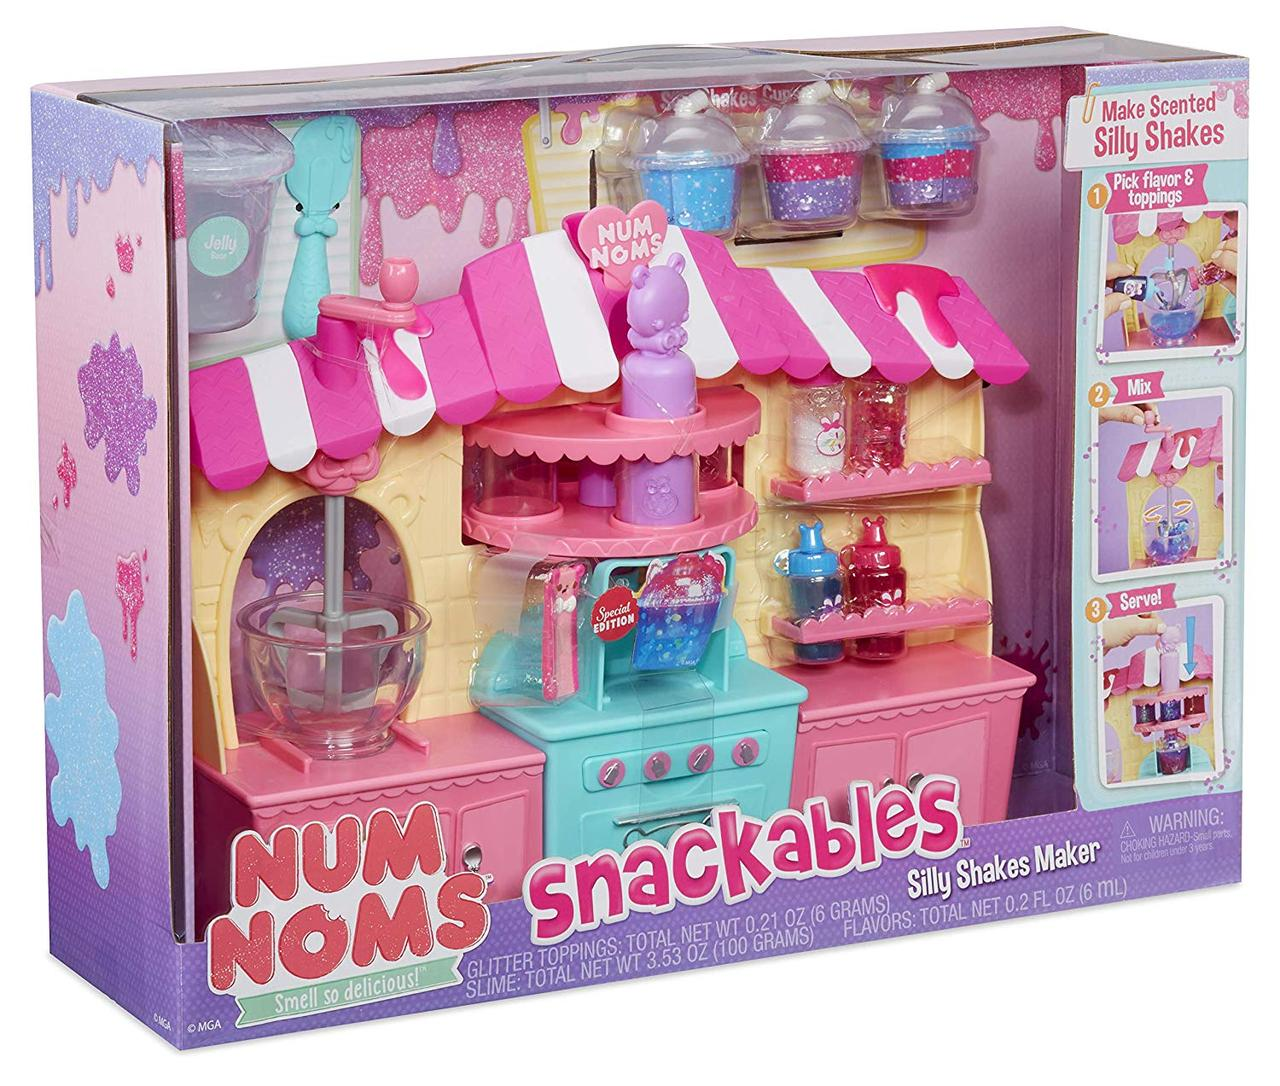 Num noms Набор Слайм фабрика для создания слаймов Snackables Silly Shakes Maker Playset Оригинал MGA